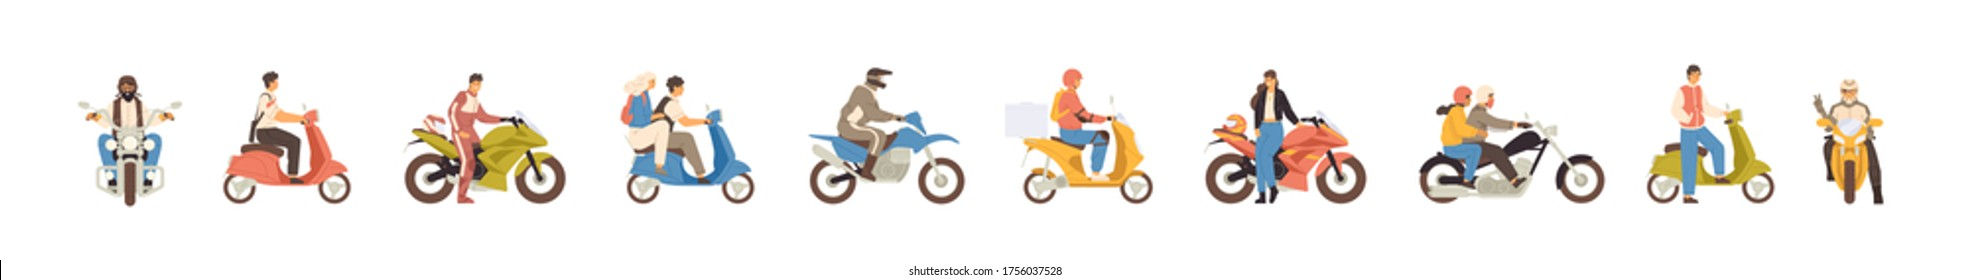 Set of different motorcycle and scooter riders vector flat illustration. Collection of various man, woman and couple drivers in helmets isolated on white background. People on motor transportation